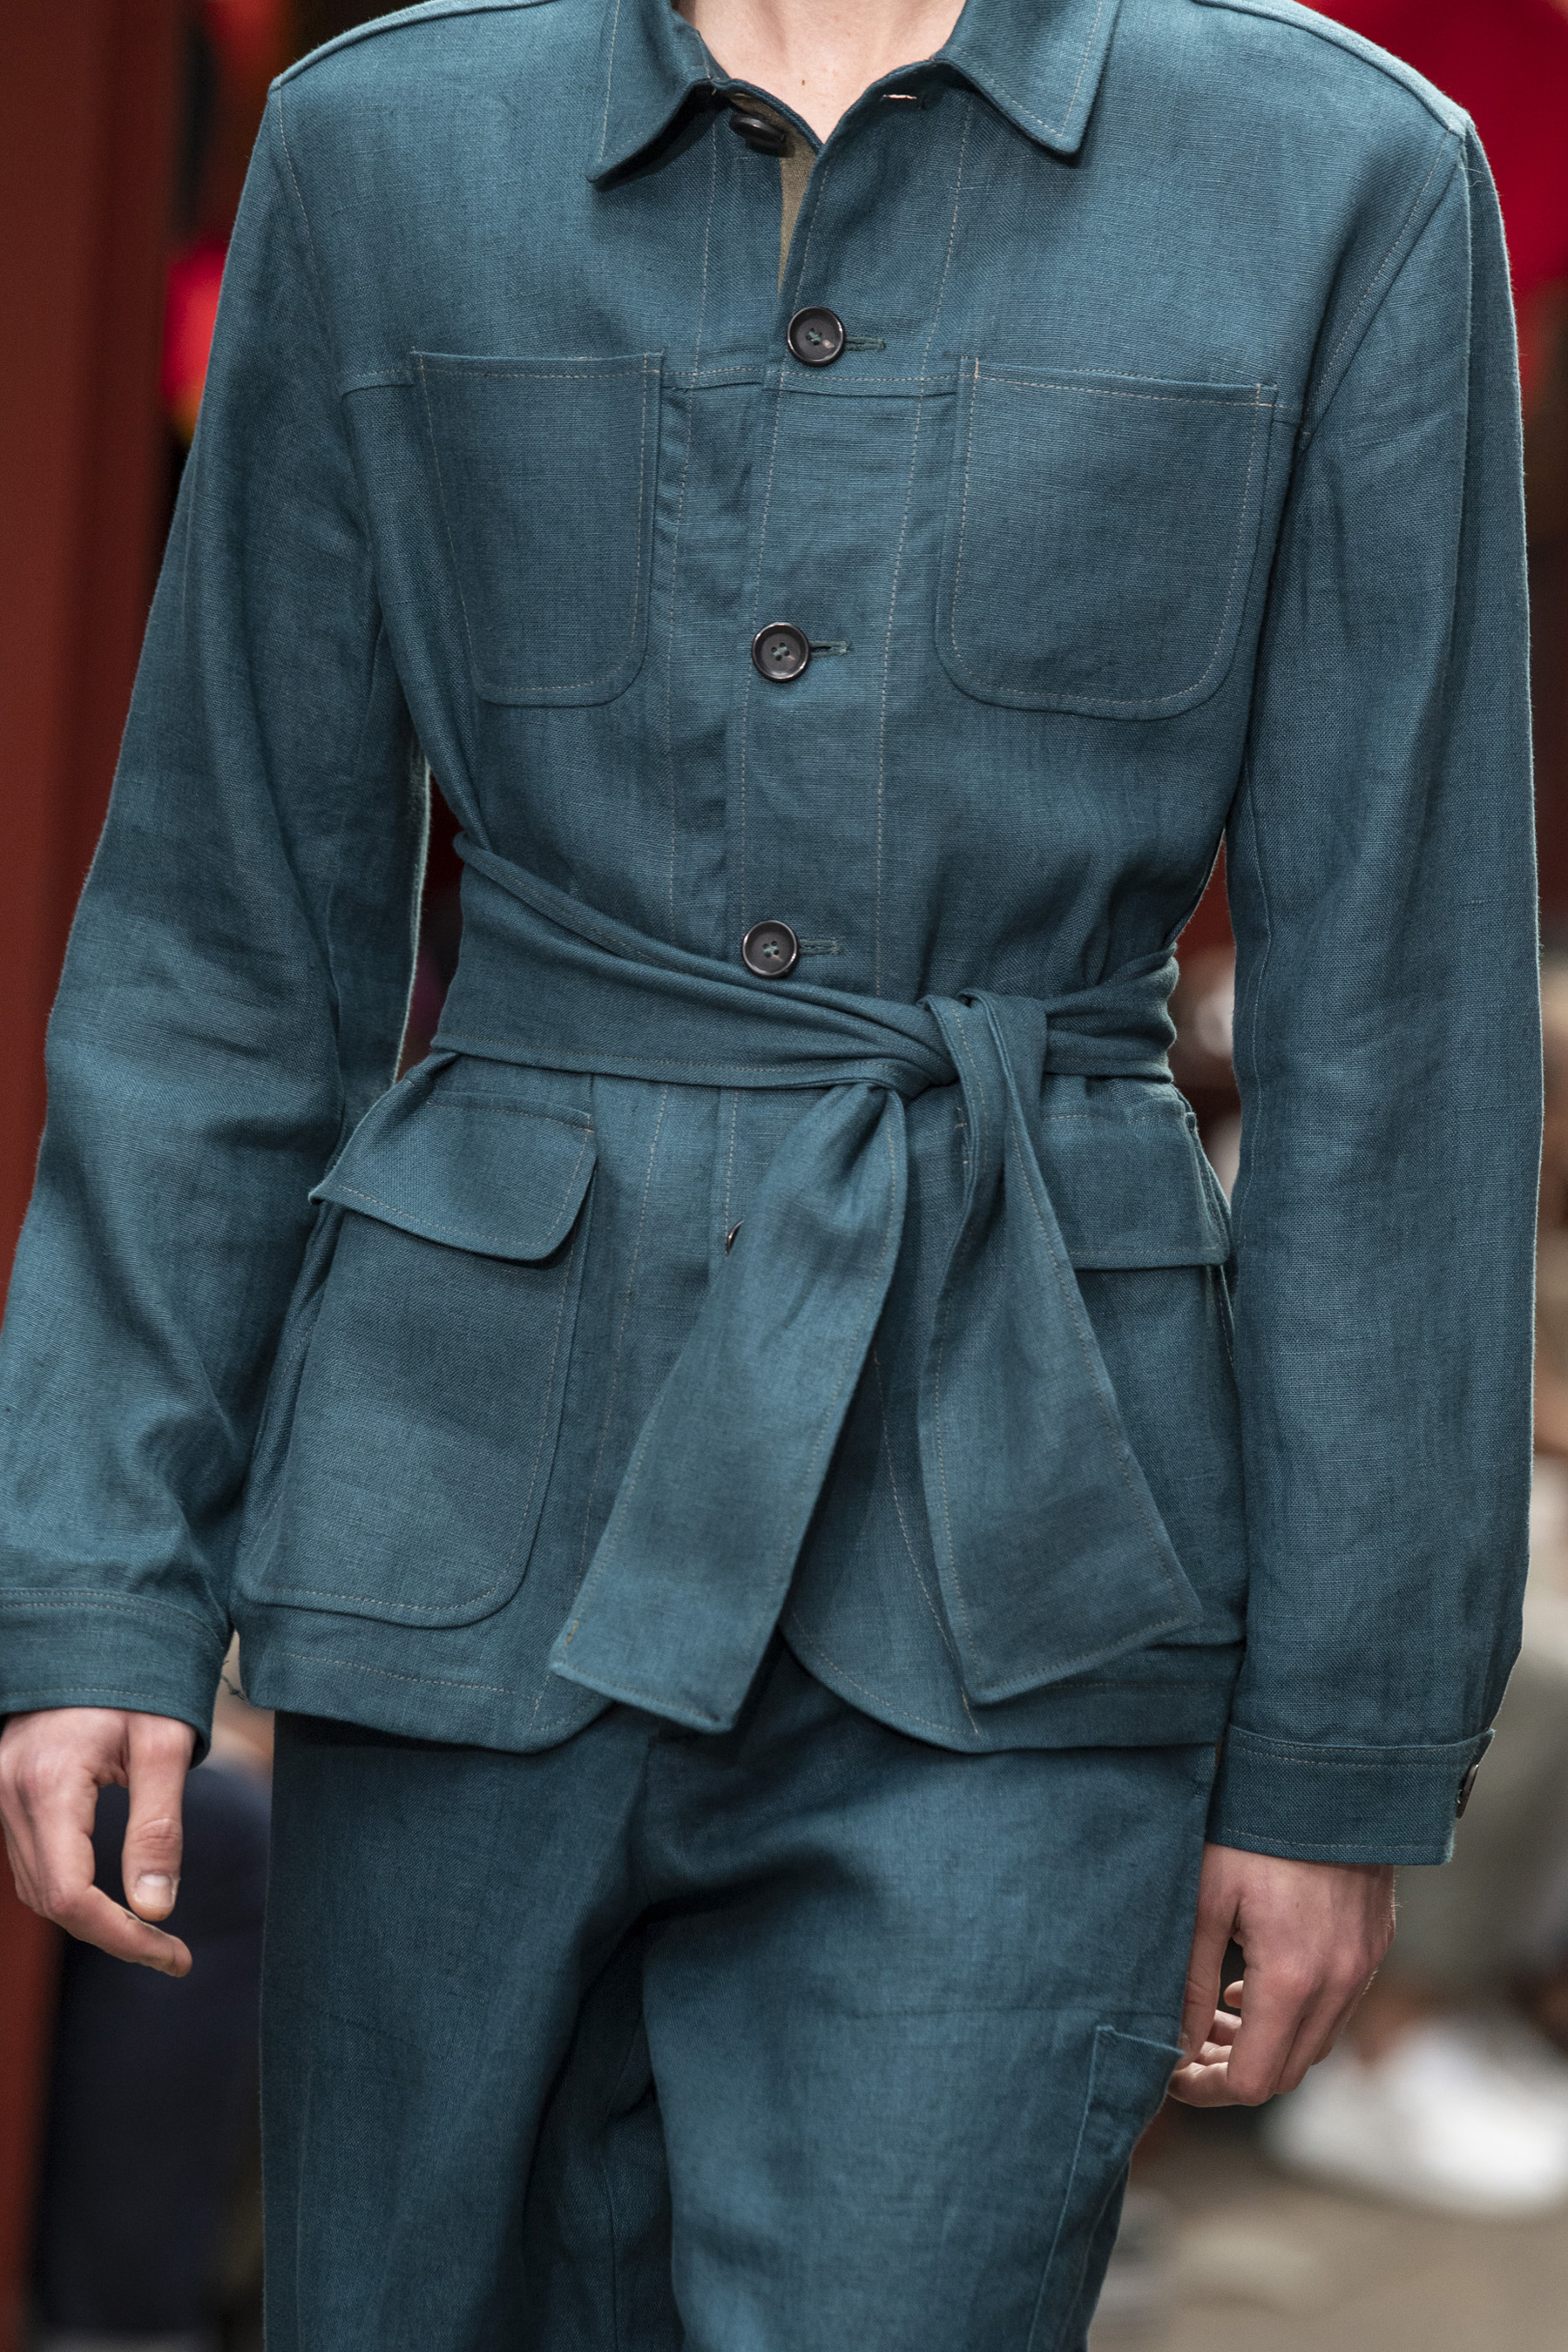 Oliver Spencer Spring 2020 Men's Fashion Show Details